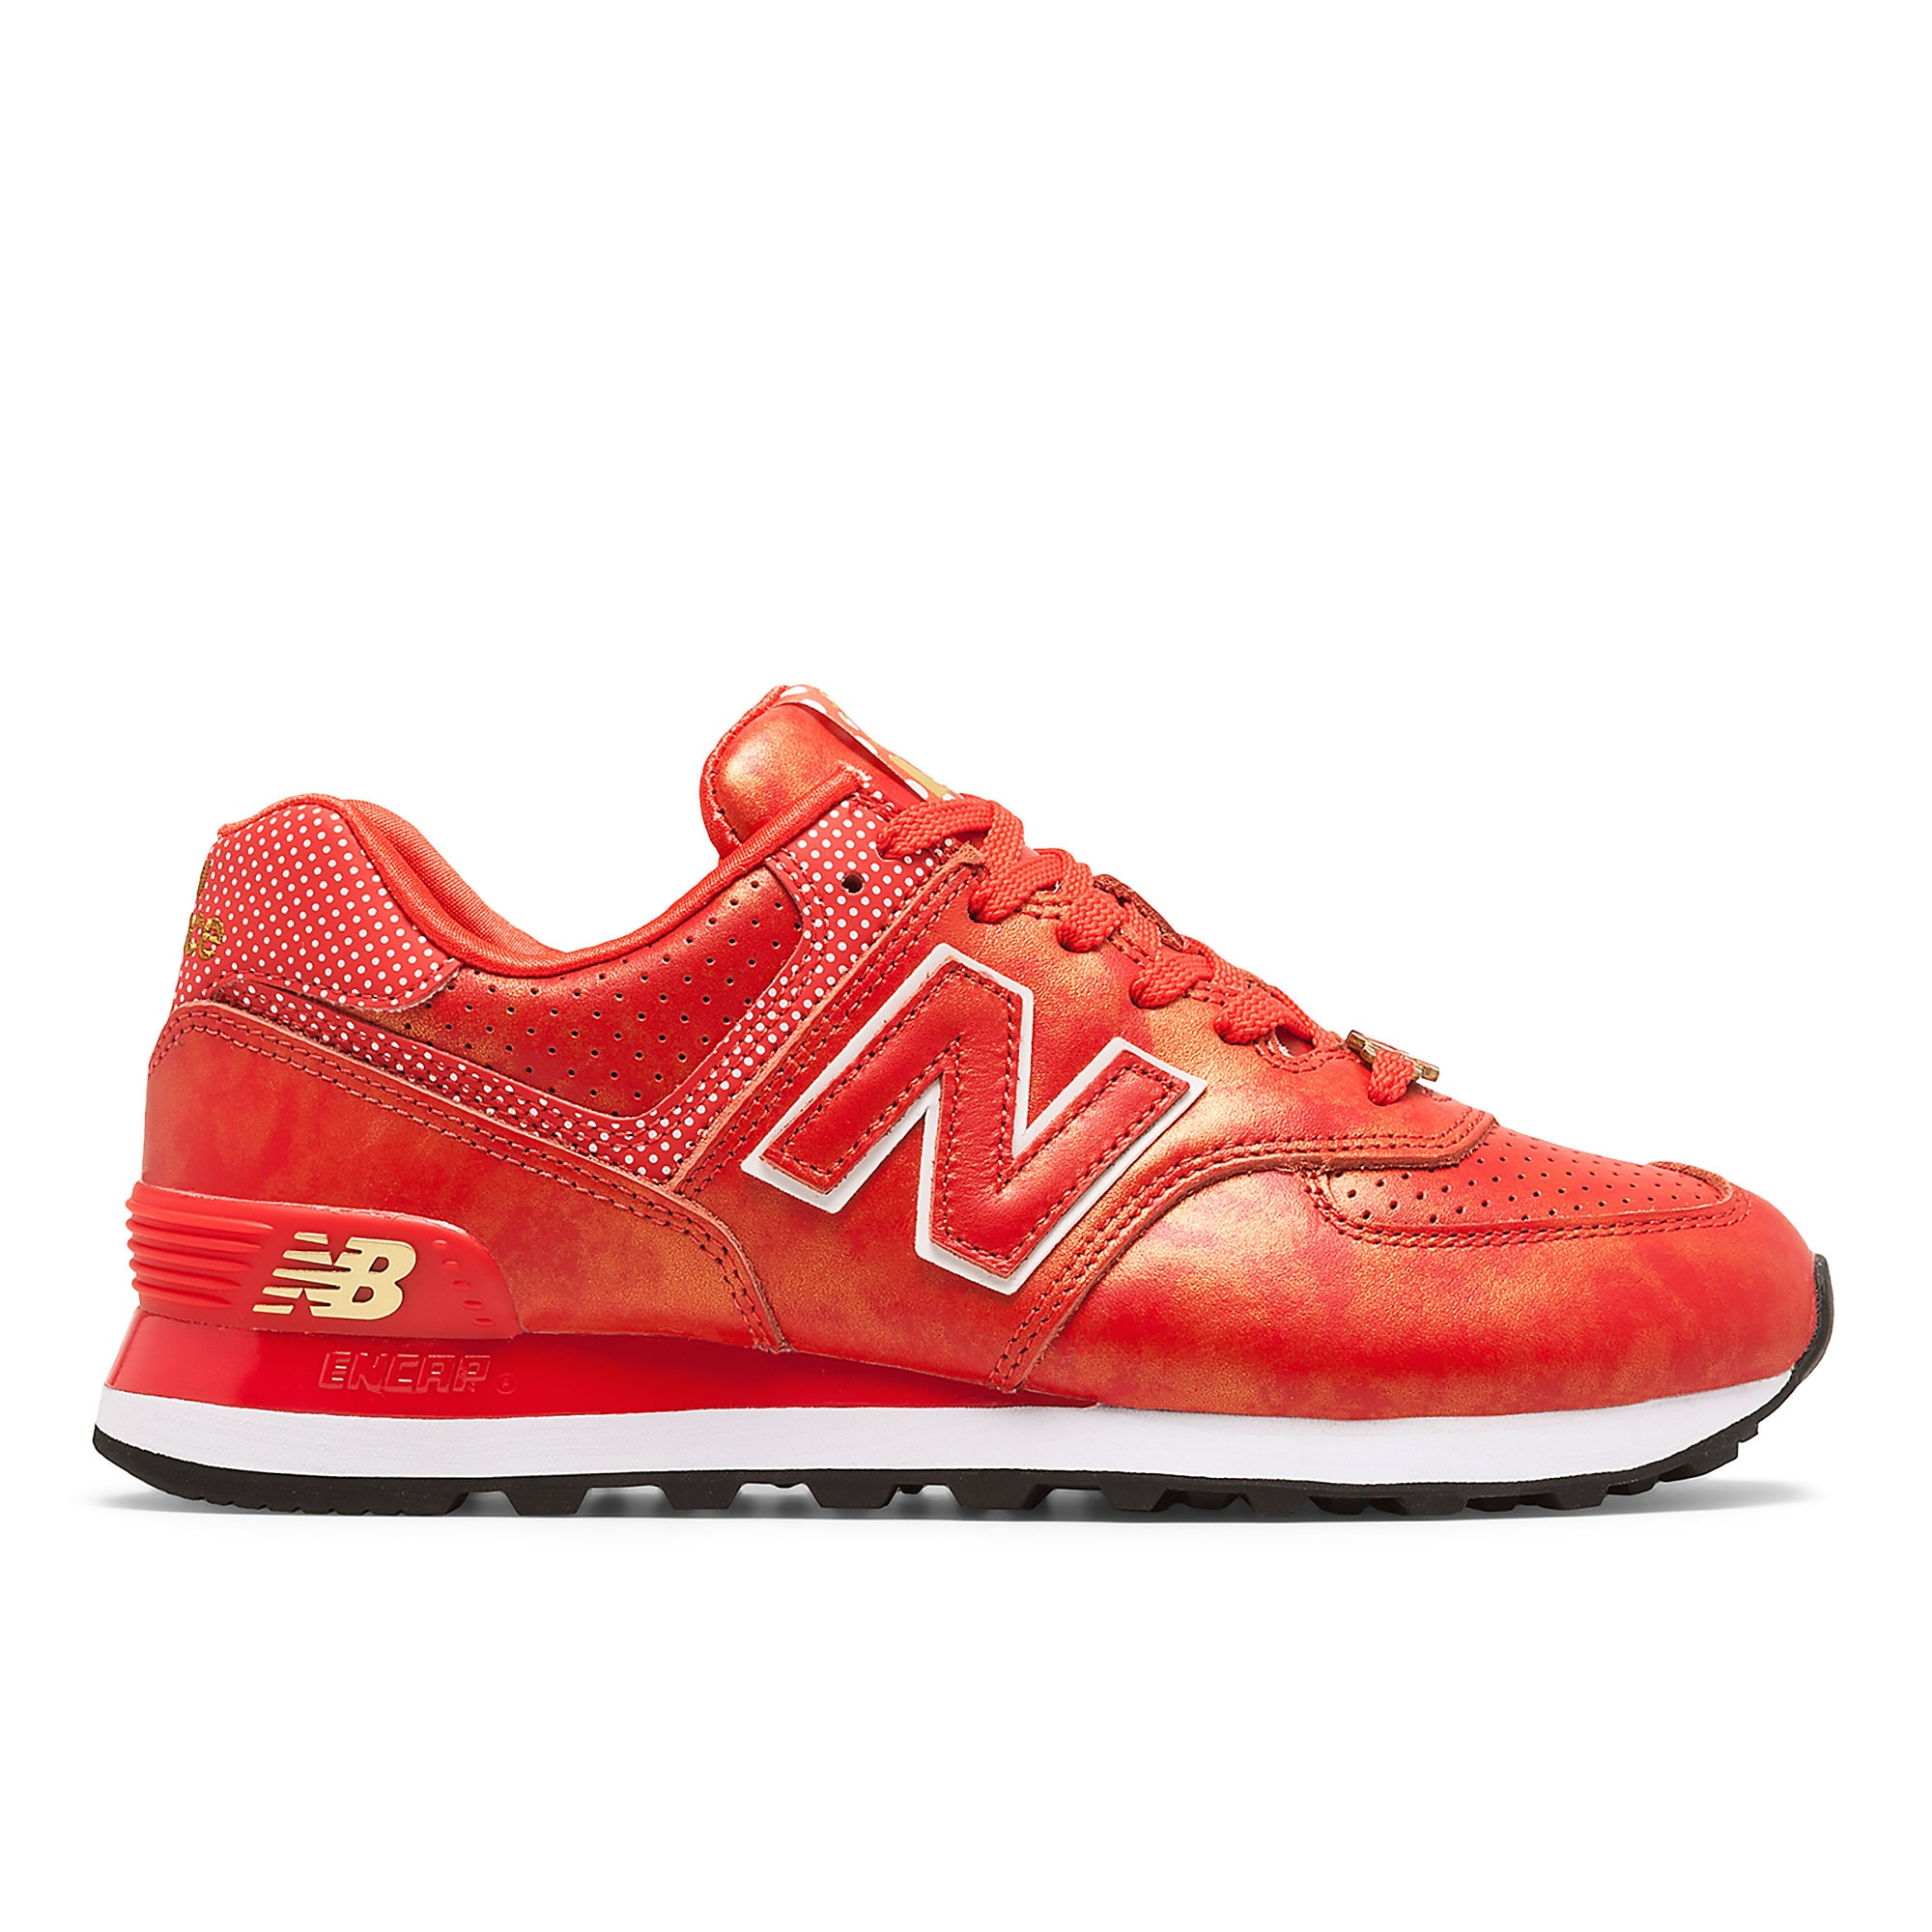 Minnie Mouse 574 Sneakers for Women by New Balance